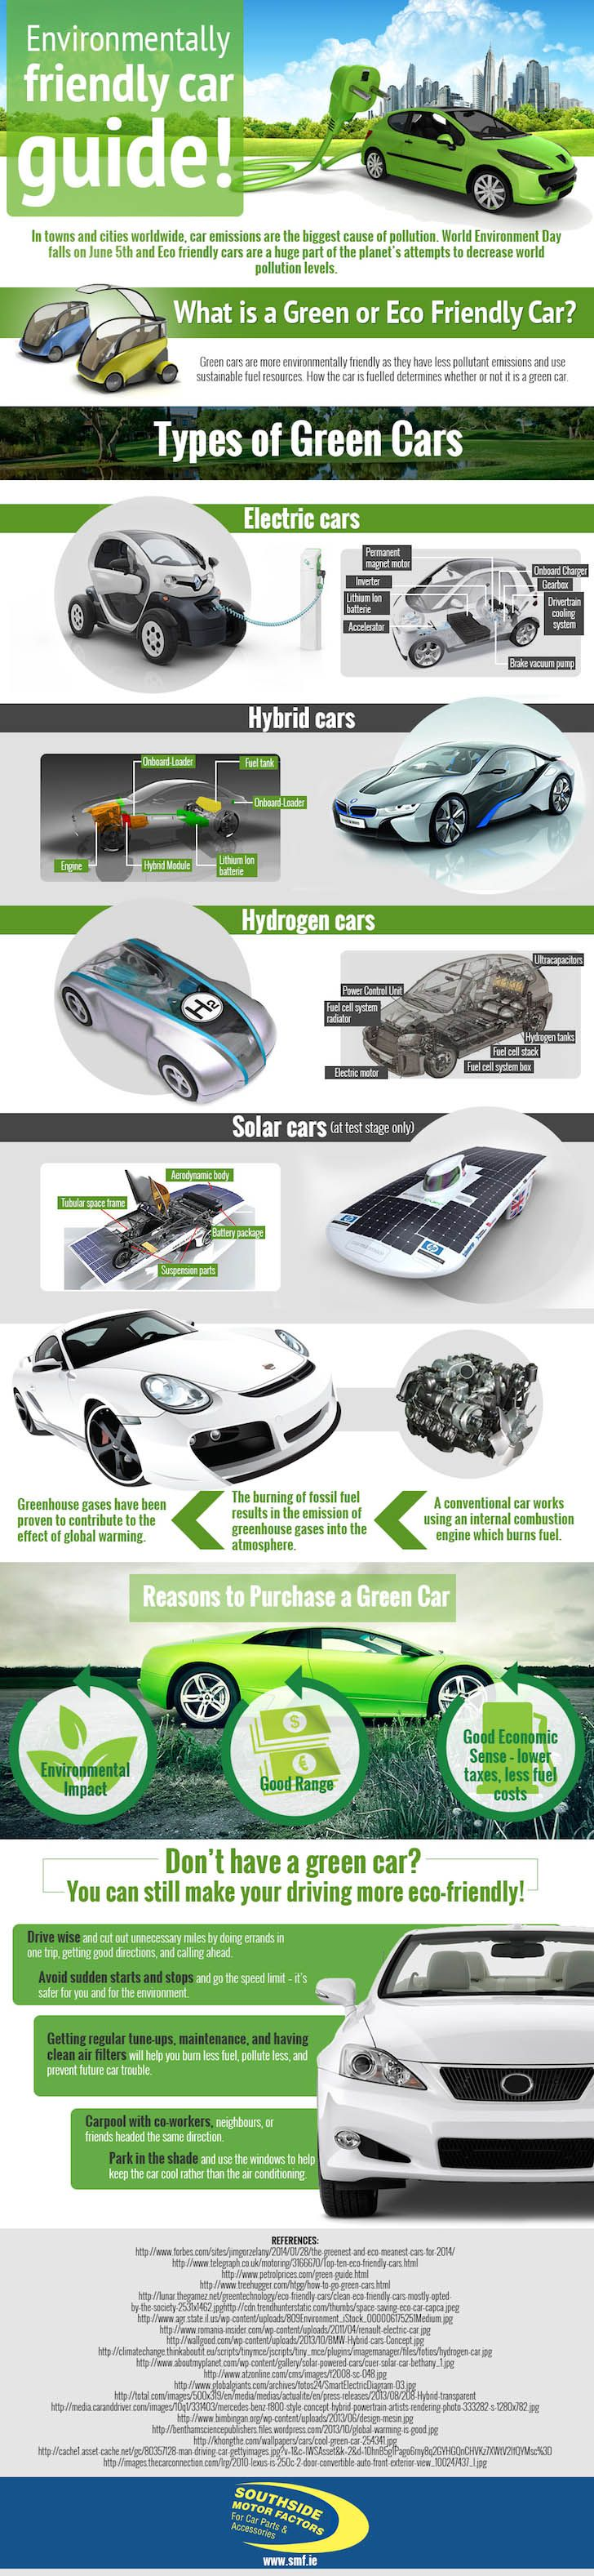 The exciting brand new street legal cruser sport elec car amp golf cart - The Exciting Brand New Street Legal Cruser Sport Elec Car Amp Golf Cart Infographic A Download